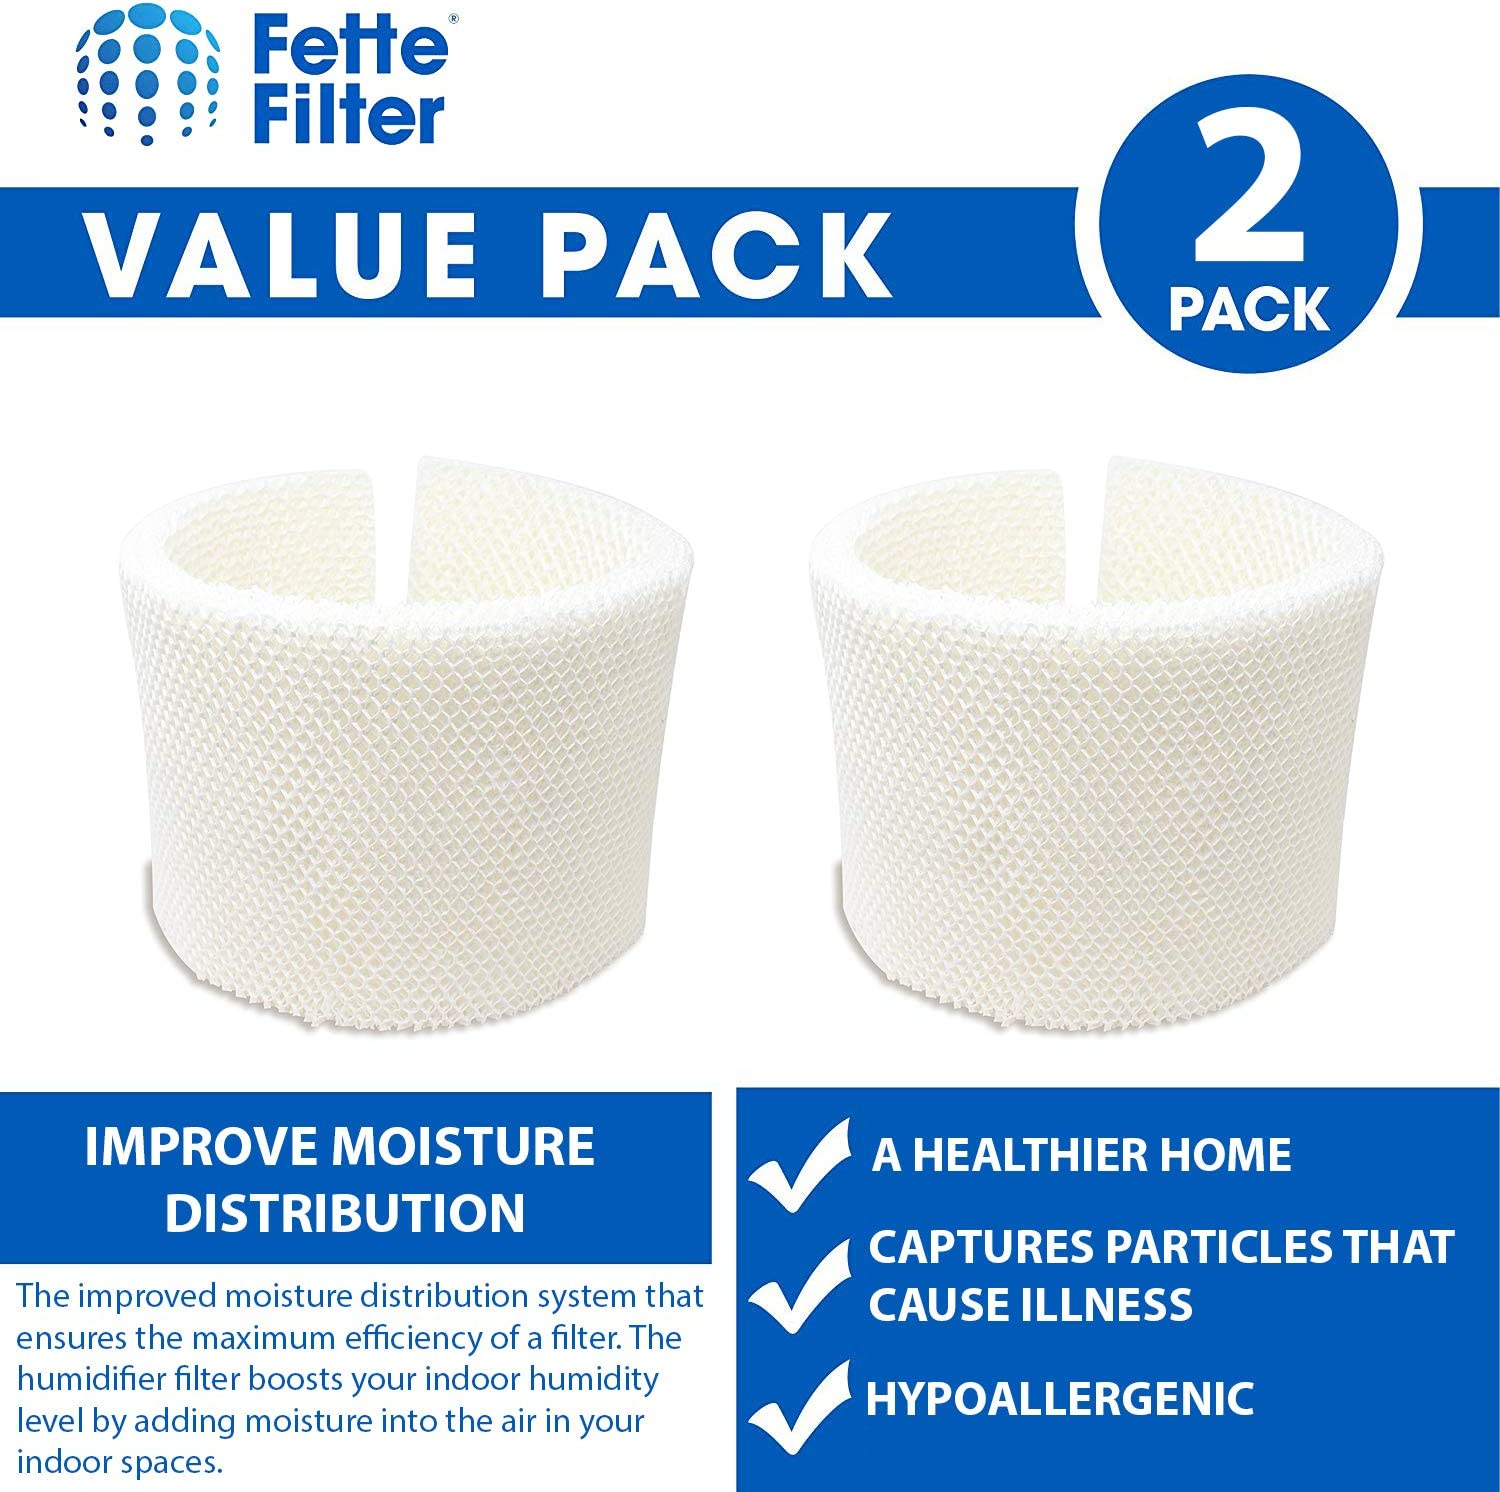 Humidifier Wicking Filter Compatible with MAF1 Fette Filter MA12001 MA12000 Pack of 2 Fits humidifier Model Numbers MA0950 MA12010 MA09500 MA1201 MA1200